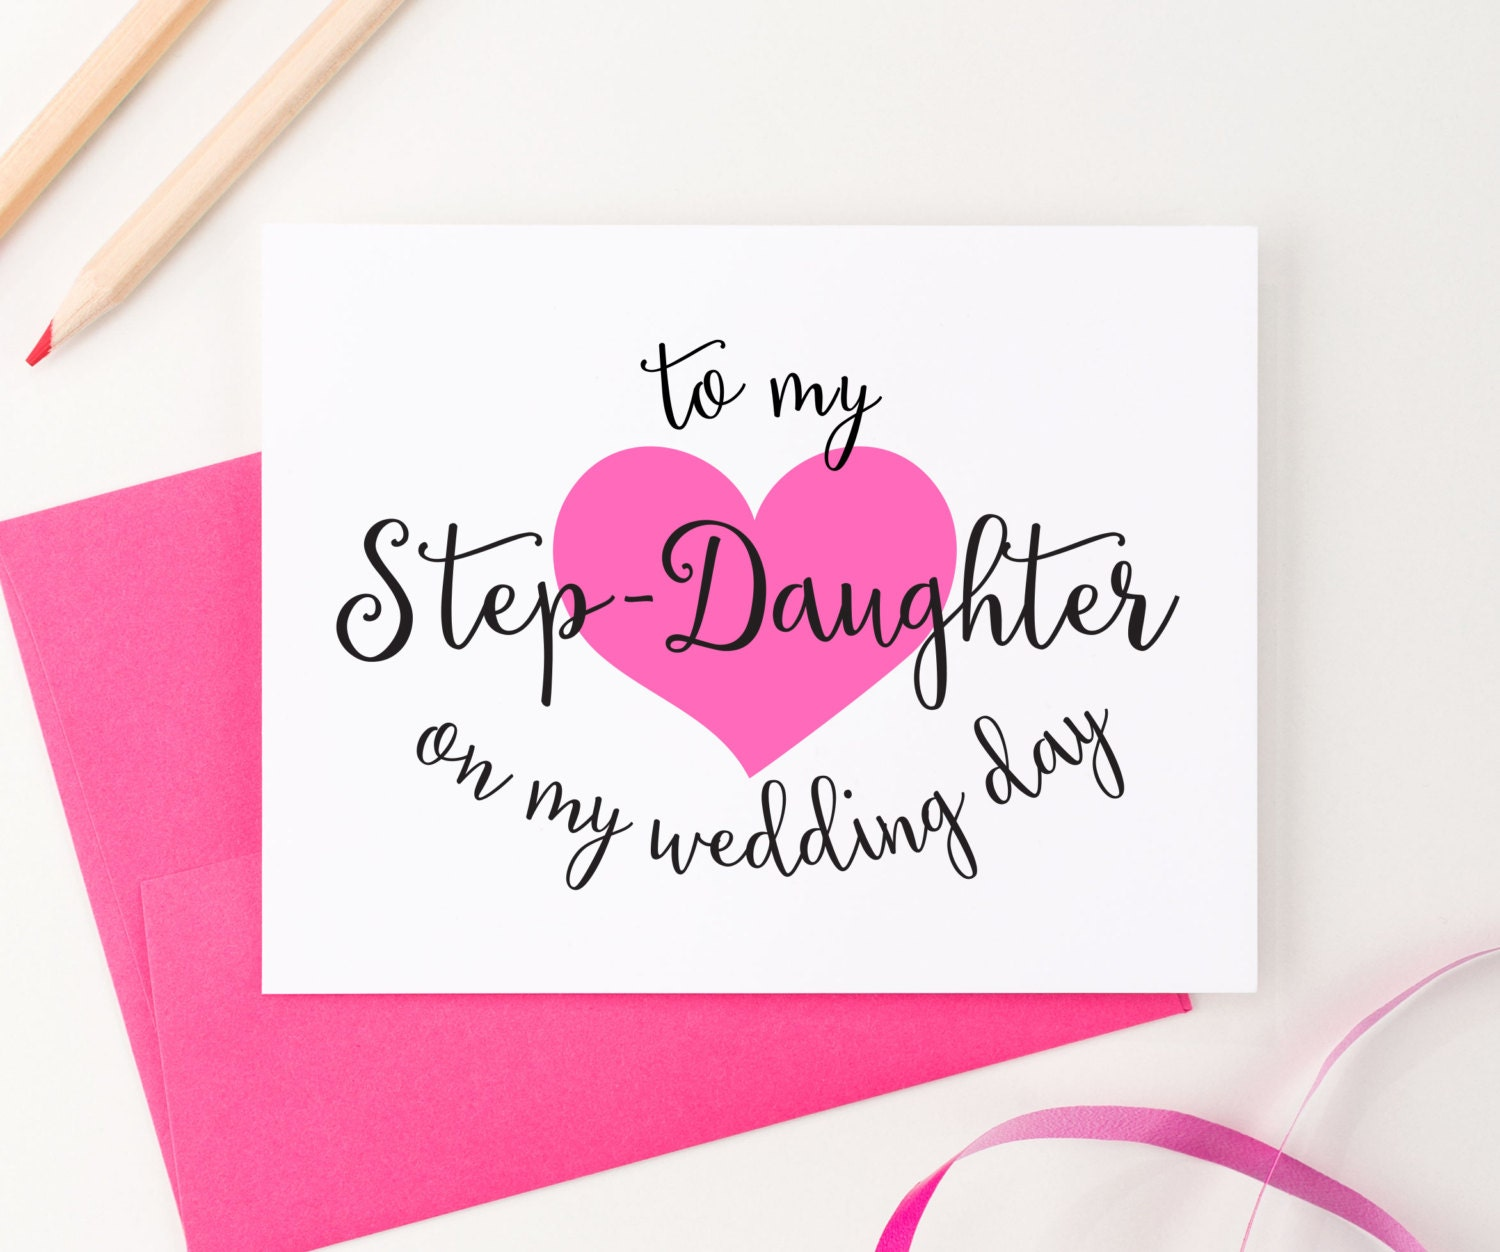 To my Step-Daughter on my Wedding Day To my Step son on my | Etsy